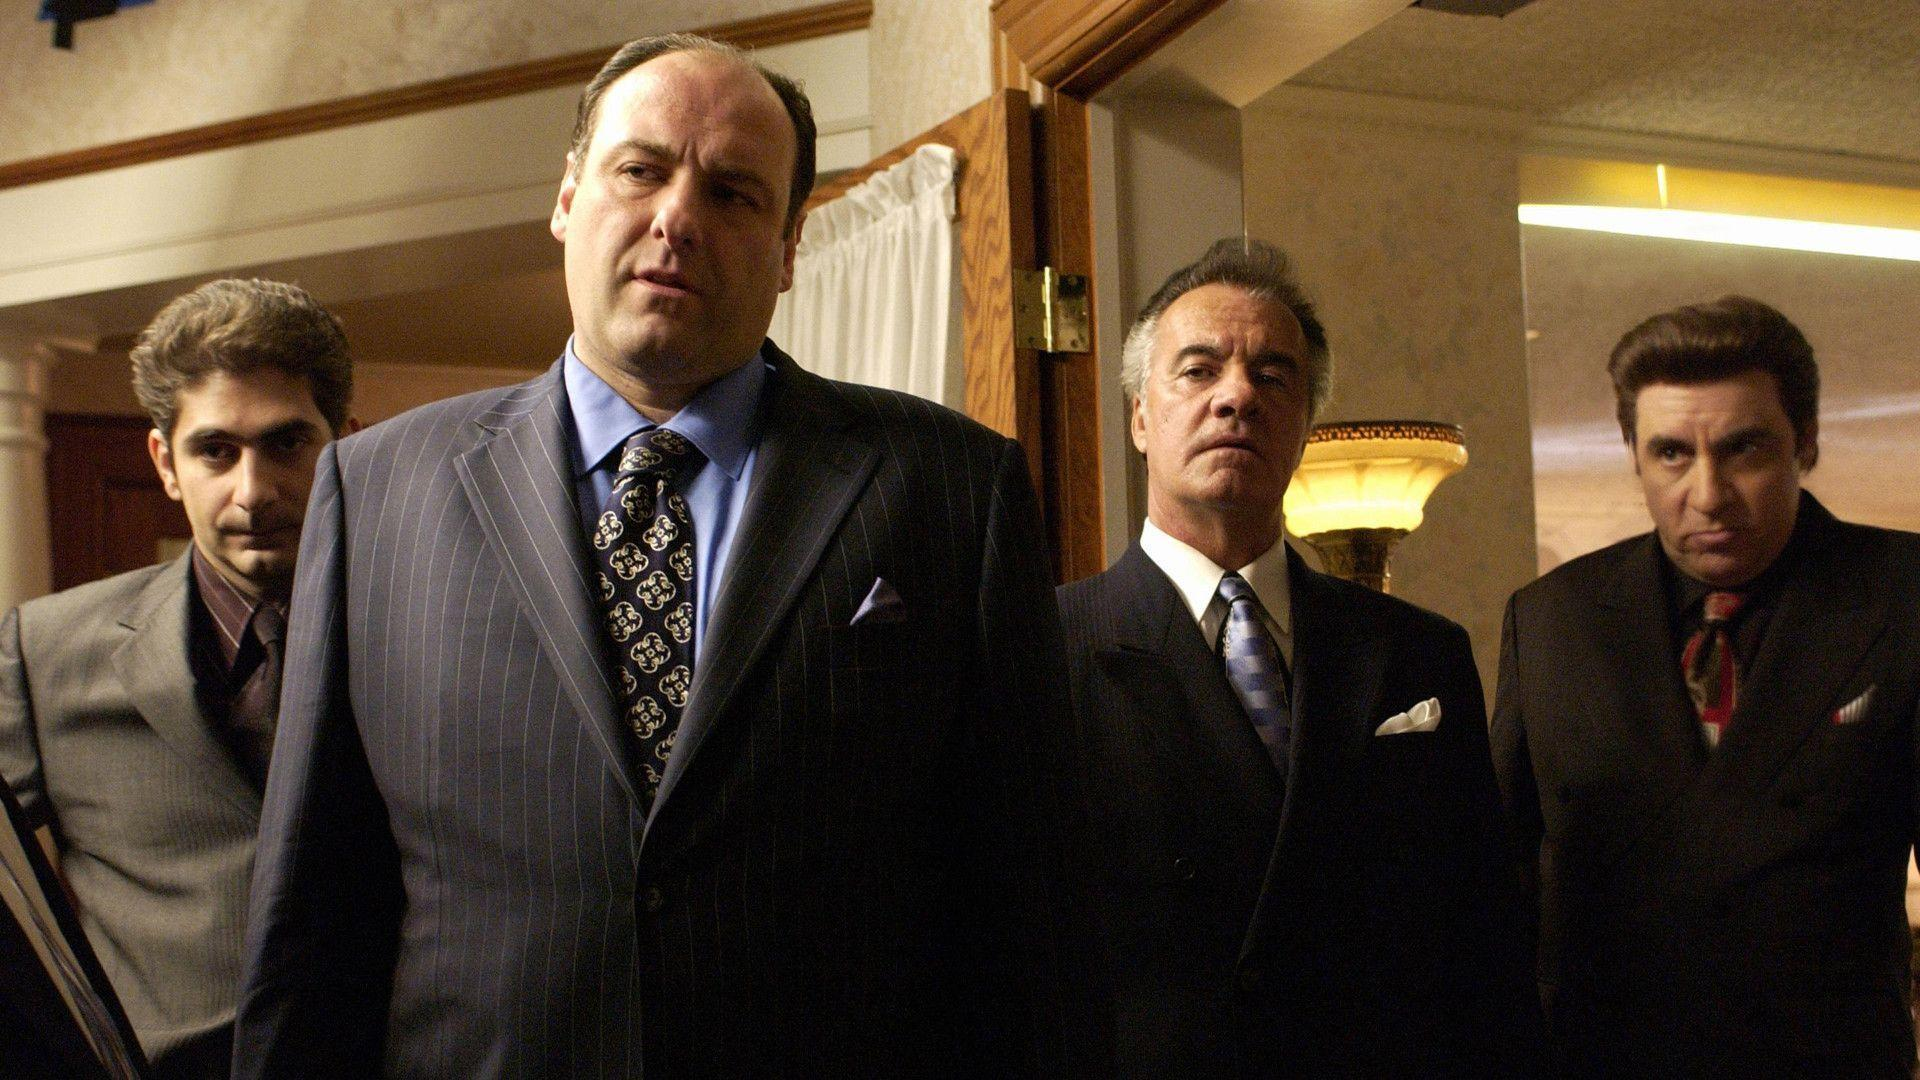 Image For > Sopranos Wallpapers Widescreen